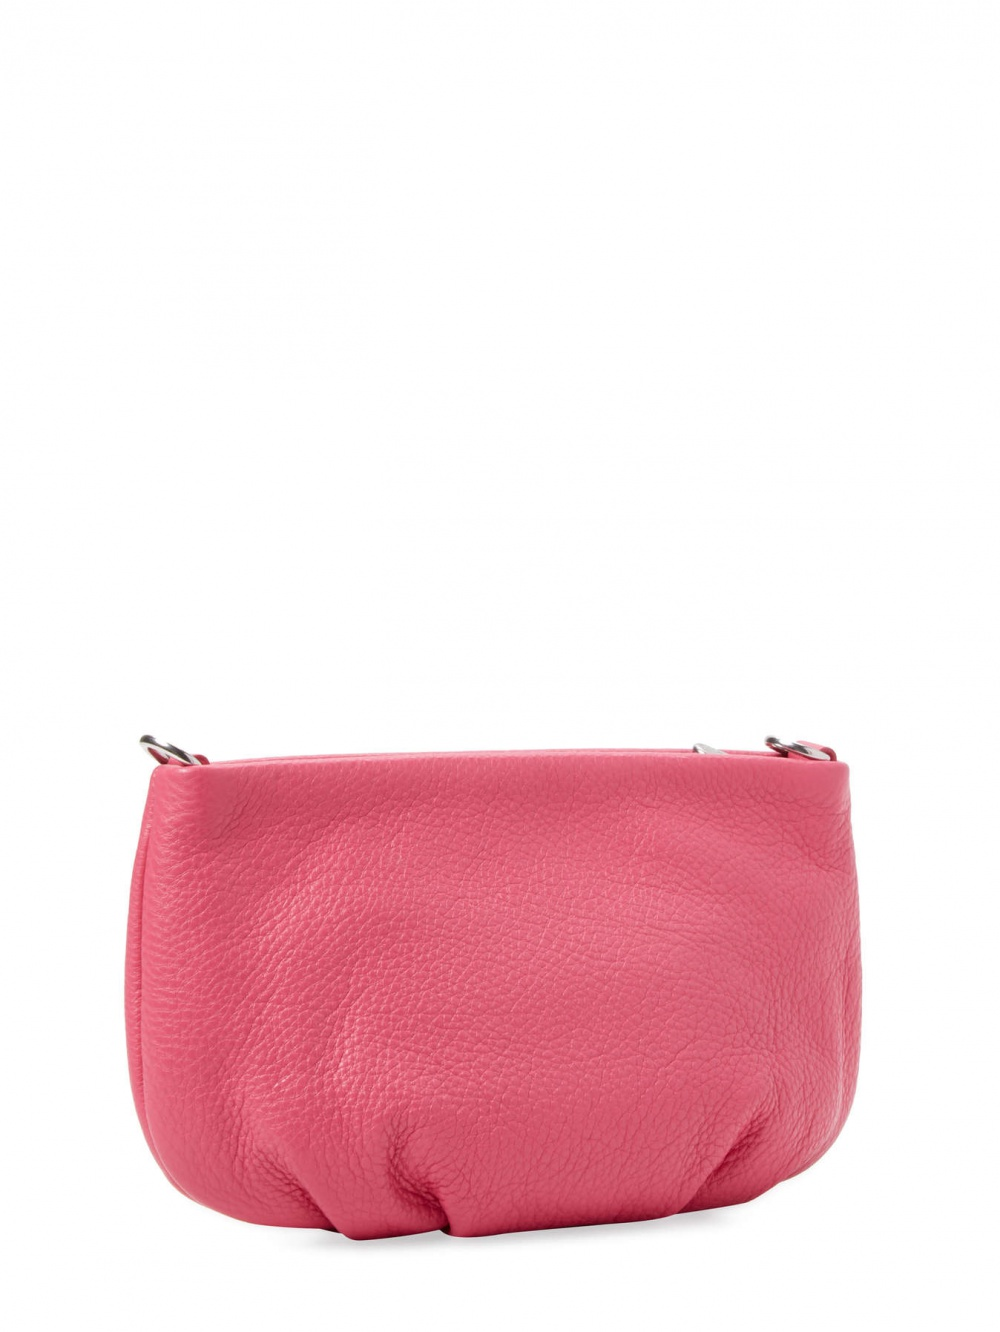 Сумка Marc by Marc Jacobs, модель New Q Percy Crossbody. Цвет: bright rose